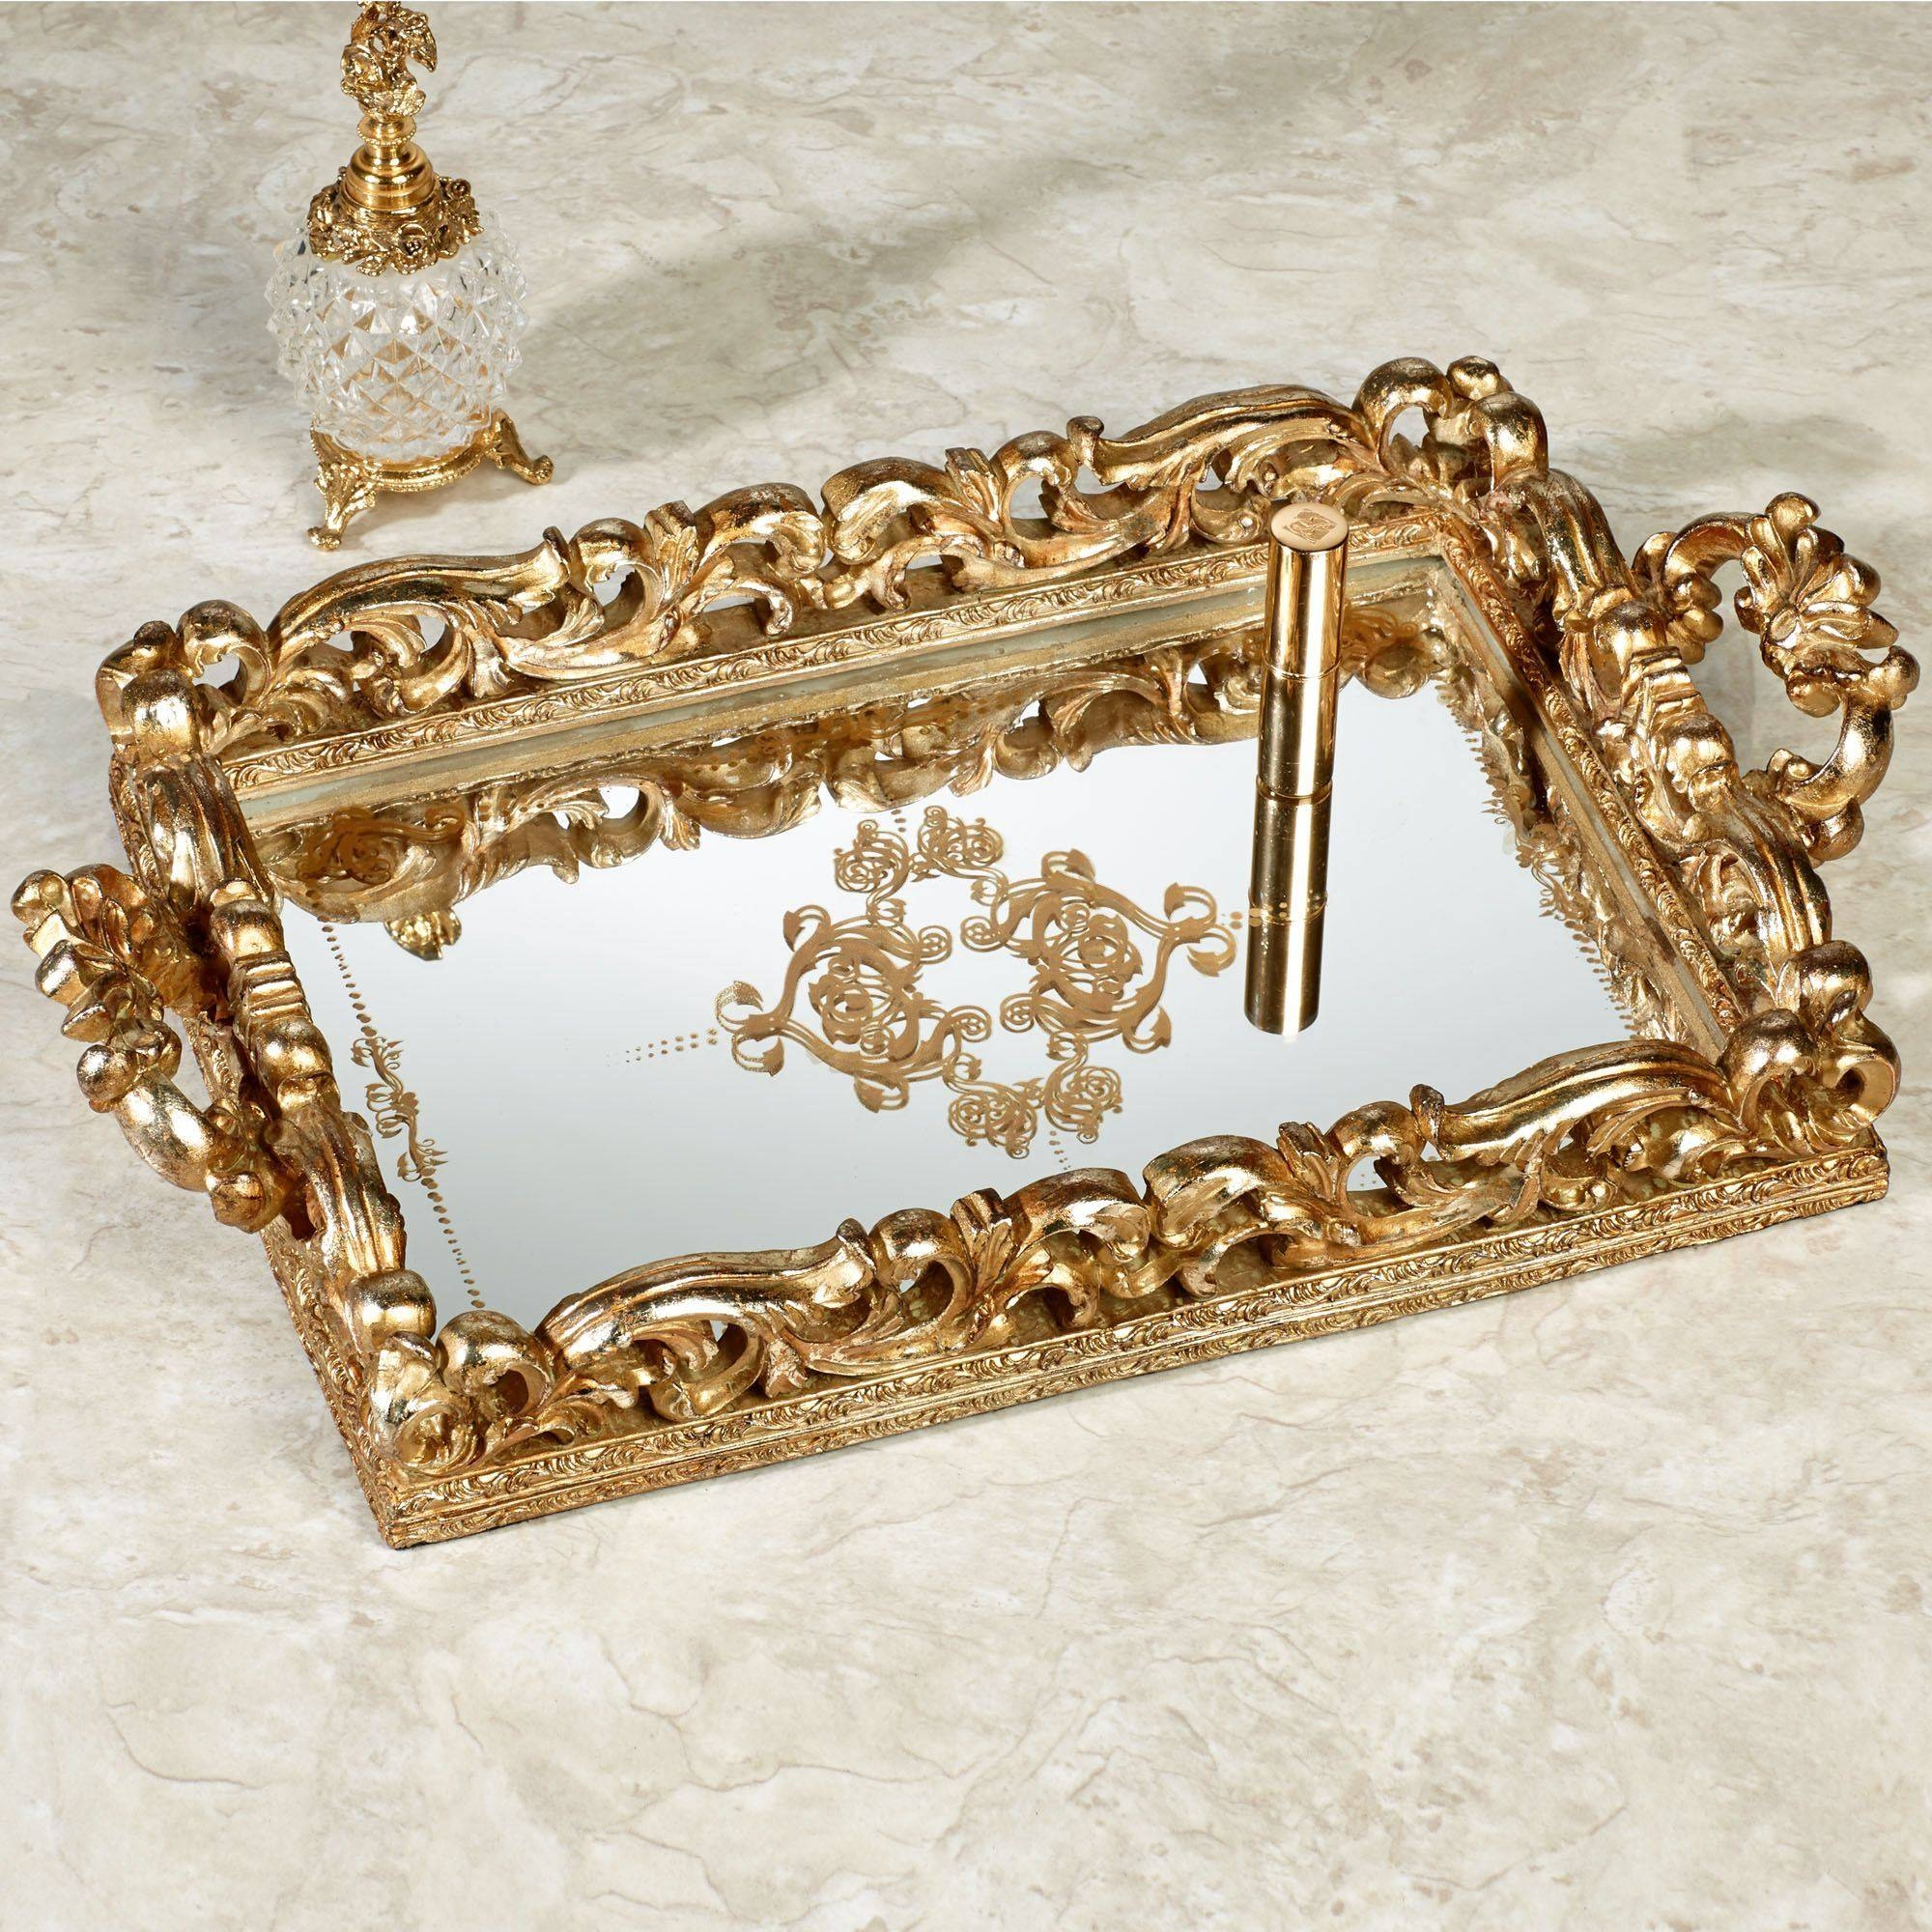 Elaine Venetian Gold Mirrored Vanity Tray intended for Venetian Tray Mirrors (Image 9 of 25)